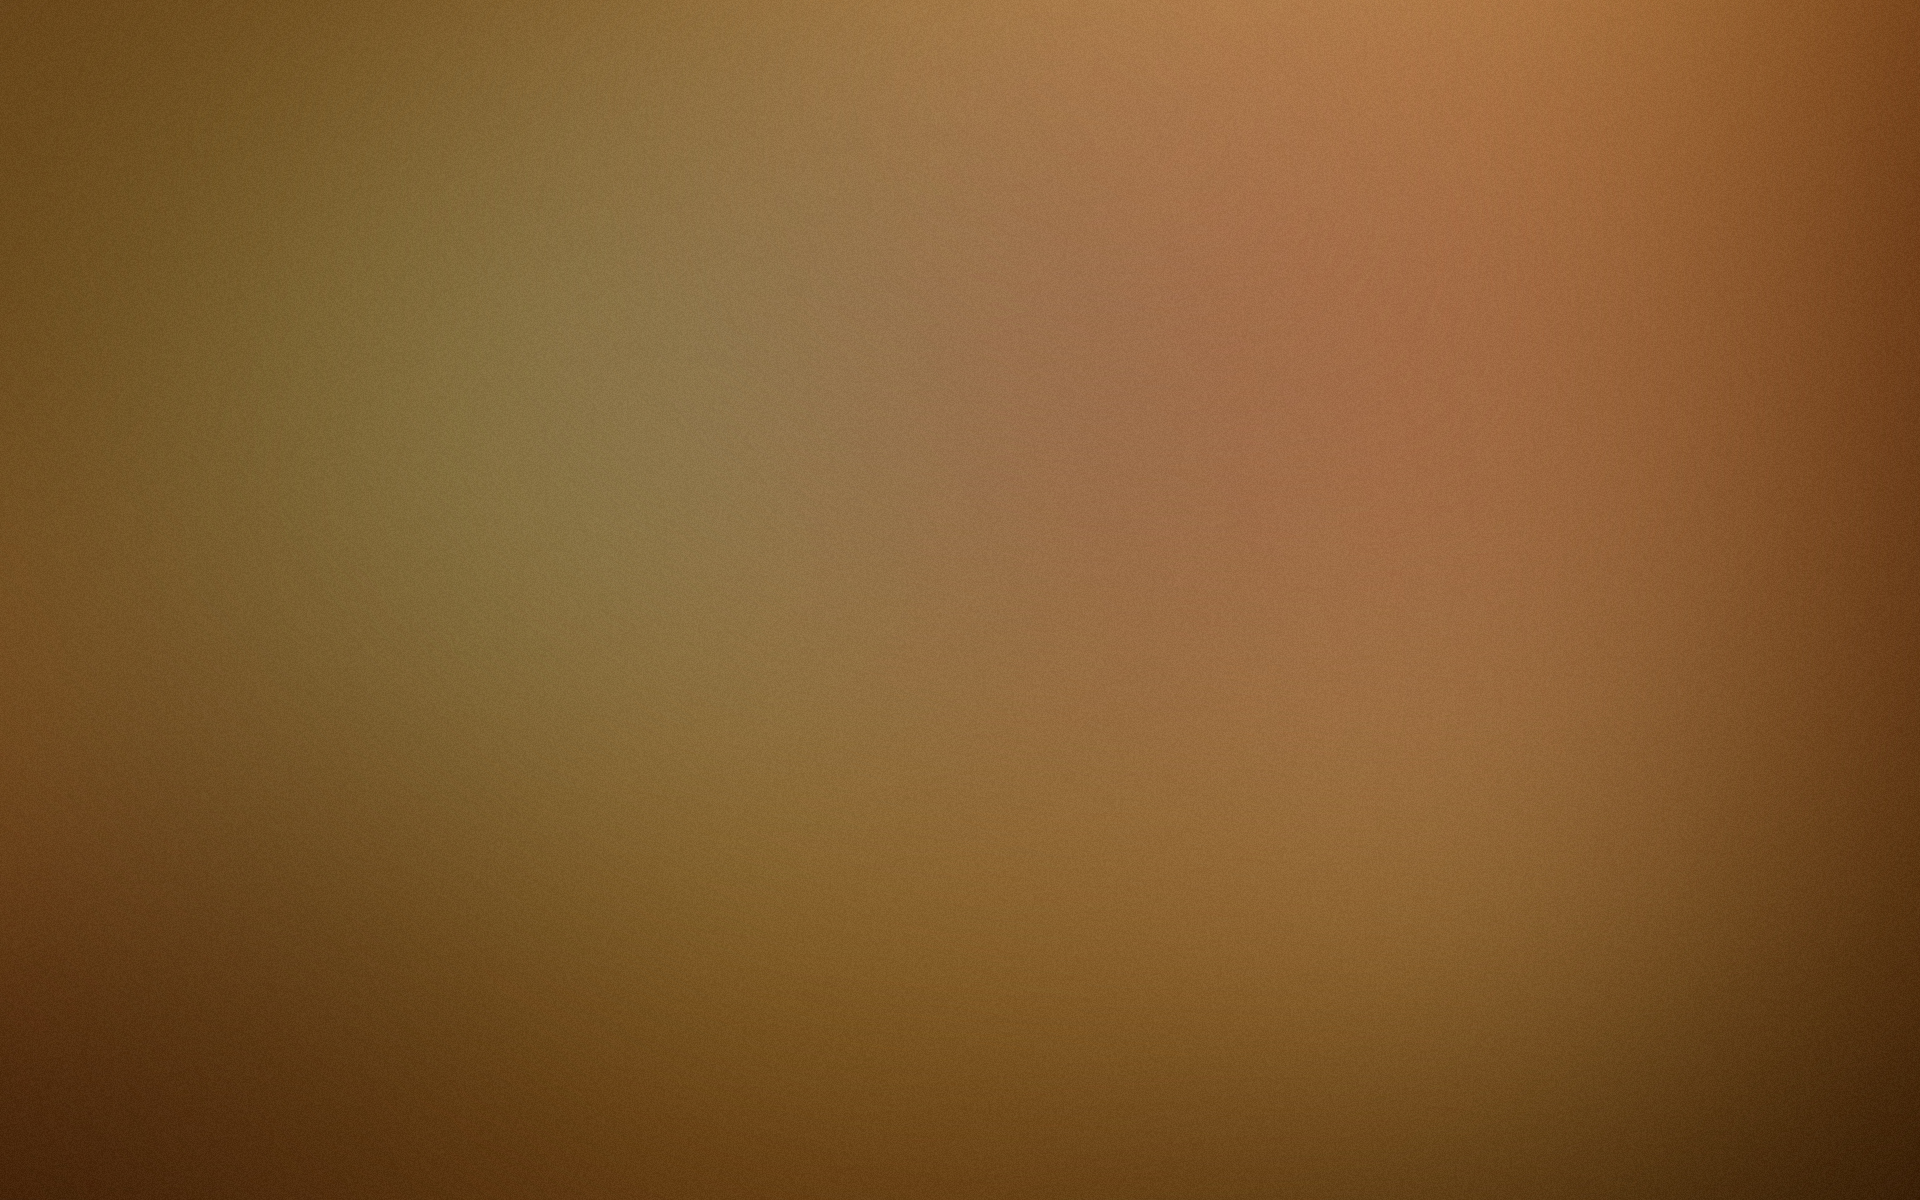 abstract minimalistic gaussian Blur HD Wallpaper